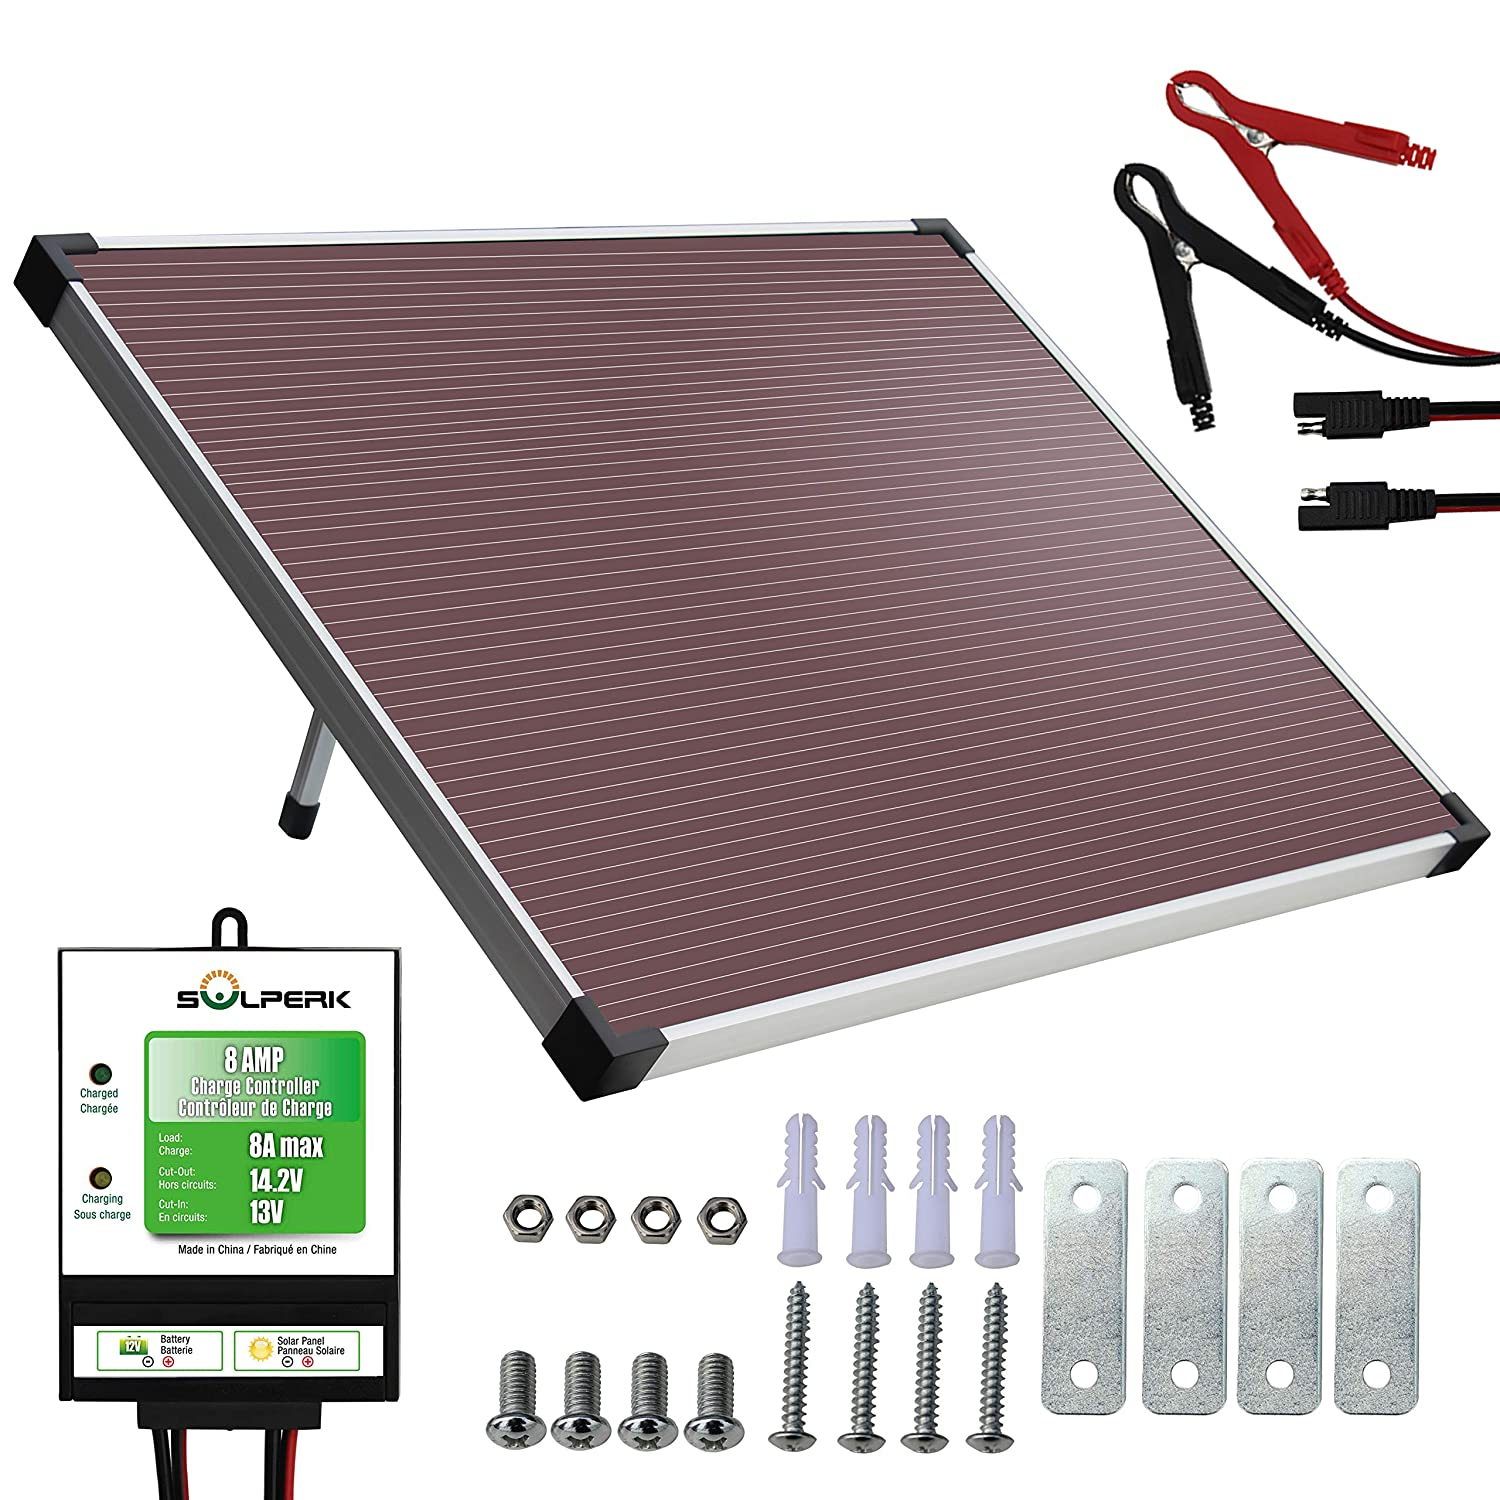 SOLPERK 12V Solar Panel Solar trickle Charger Solar Battery Charger and Maintainer Suitable for Automotive, Motorcycle, Boat, ATV,Marine, RV, Trailer, Powersports, Snowmobile, etc. 30W Amorphous